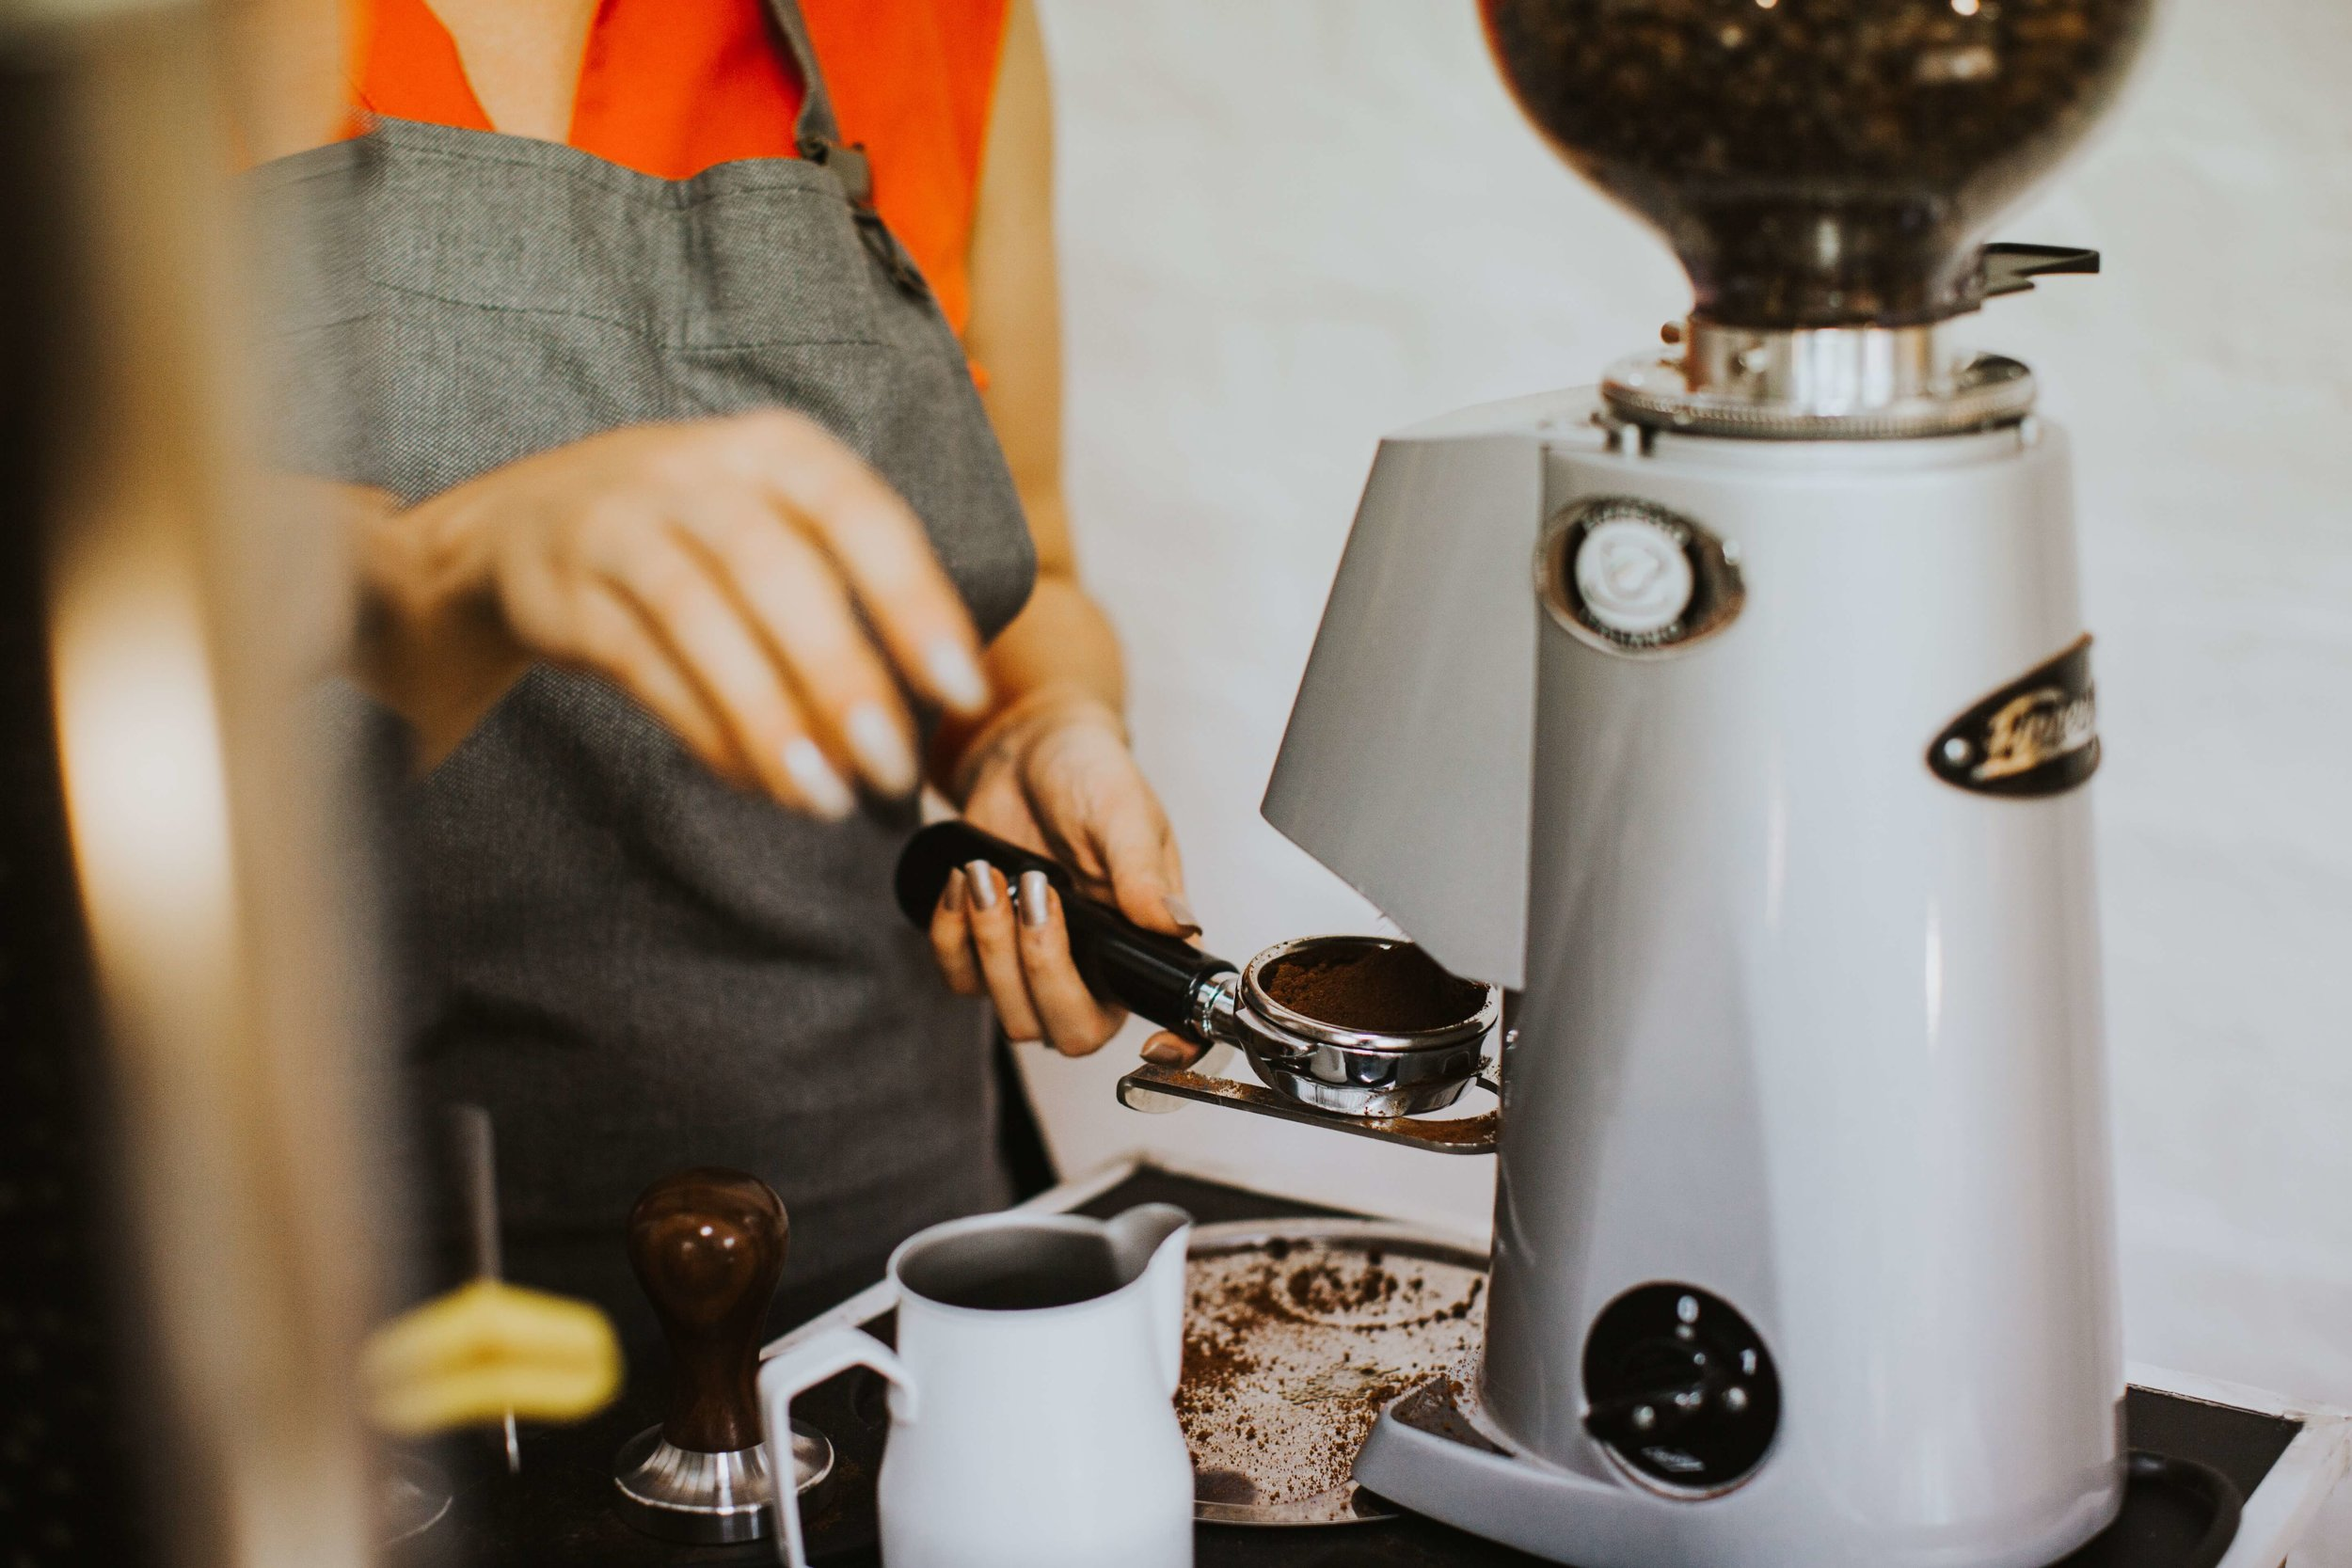 Coffee Bar Hire & Espresso Bar Catering for Weddings, Event Coffee & Corporate Catering in Scotland, Glasgow & Edinburgh Sign